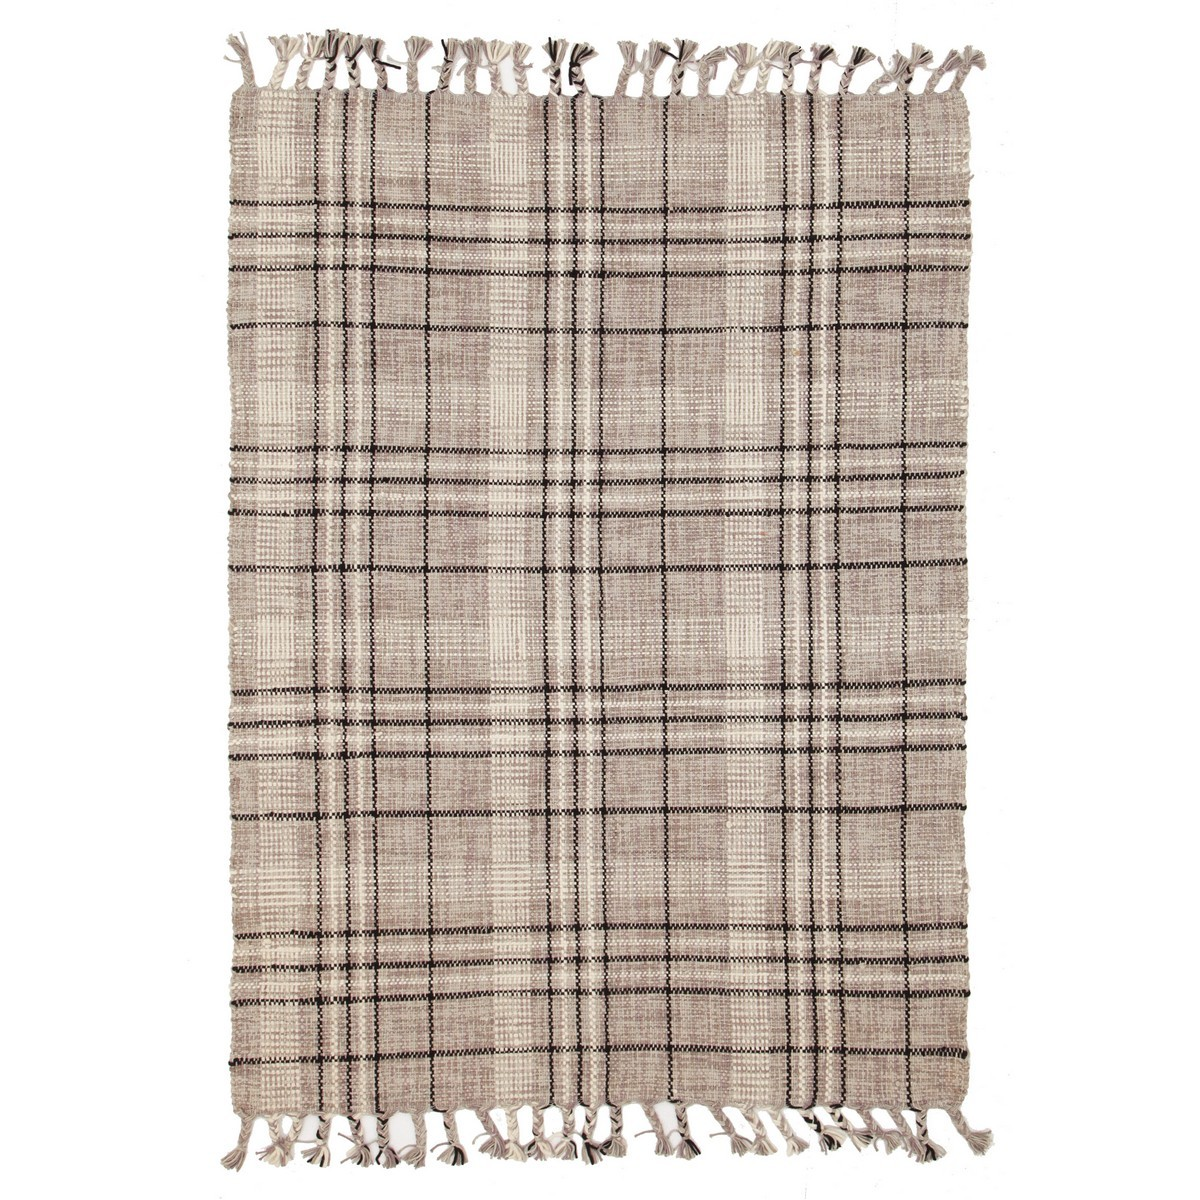 Nordic Lattice Cotton Rug, 225x155cm